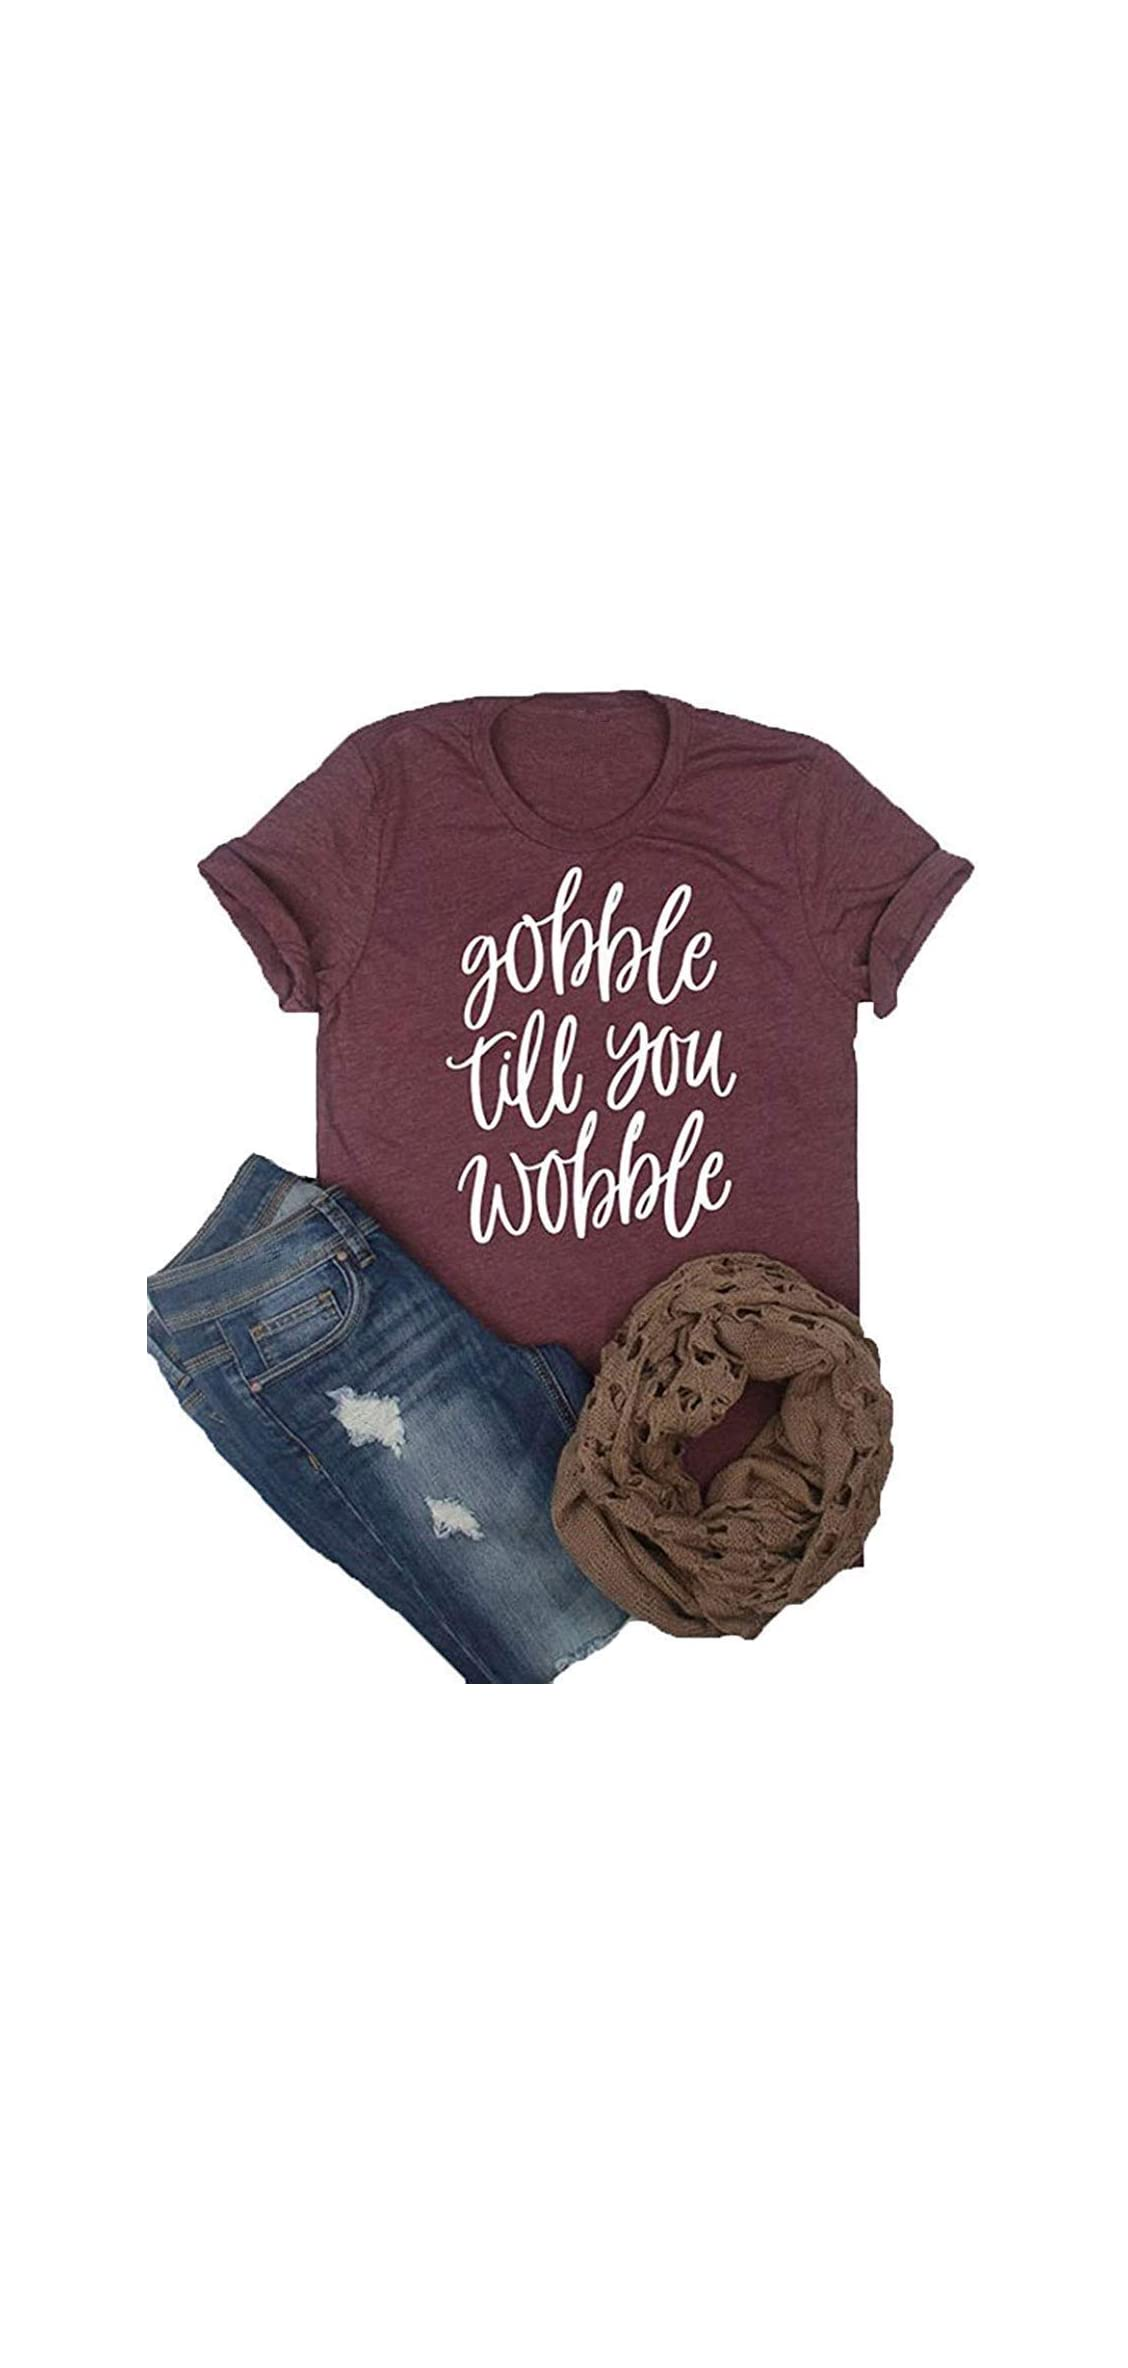 Gobble Til You Wobble Shirt Women Funny Cute Fall